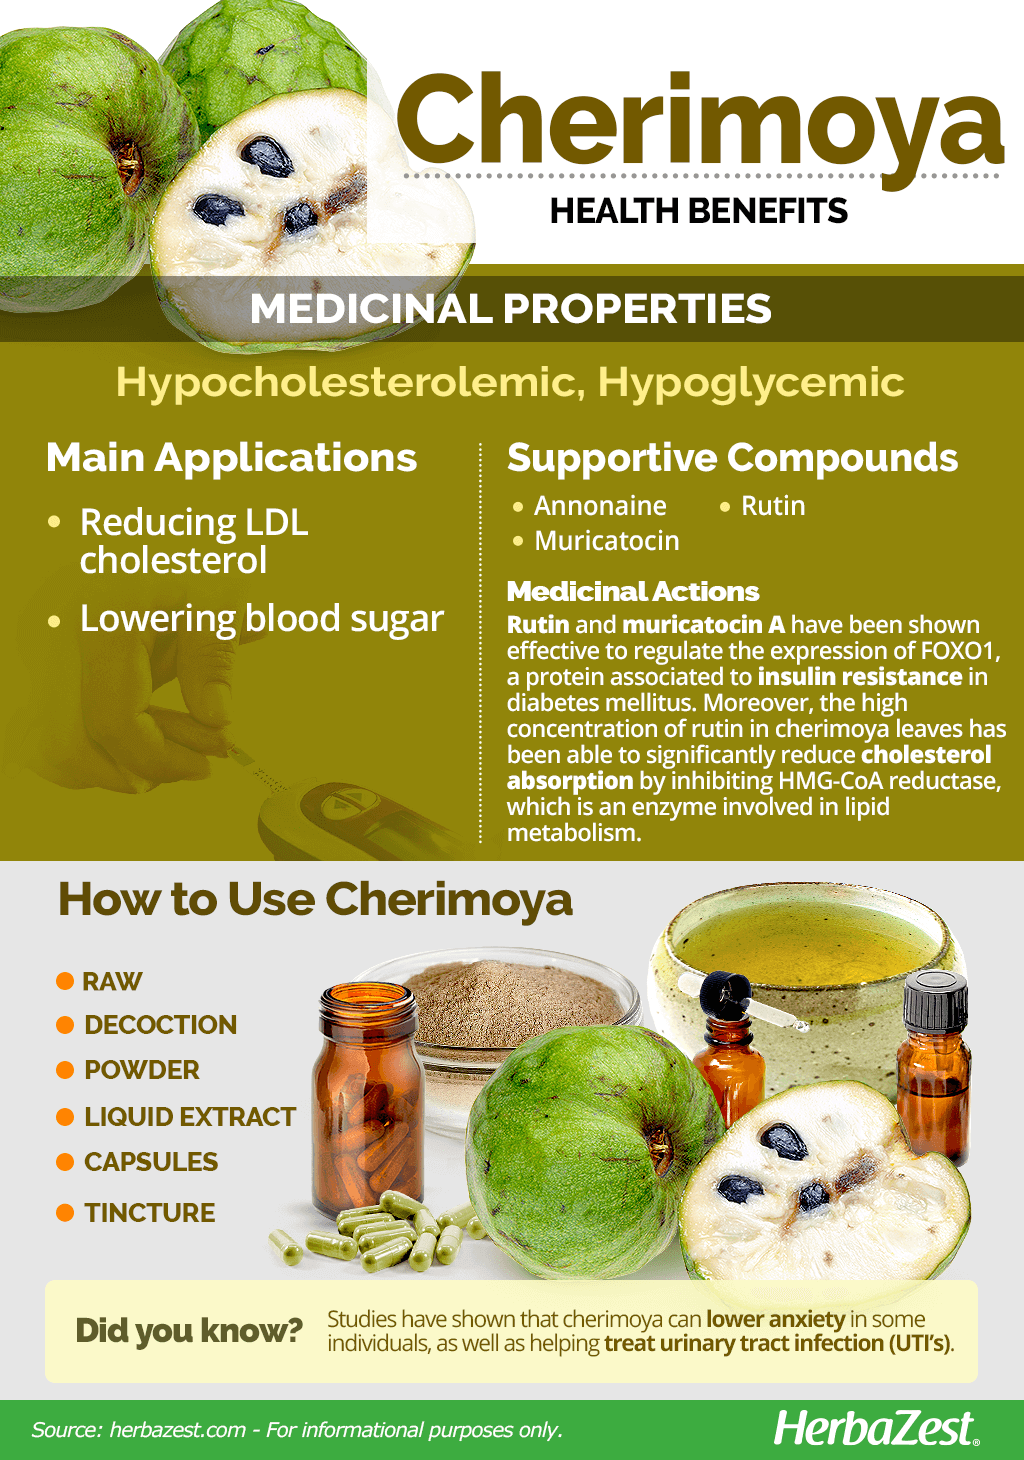 All About Cherimoya